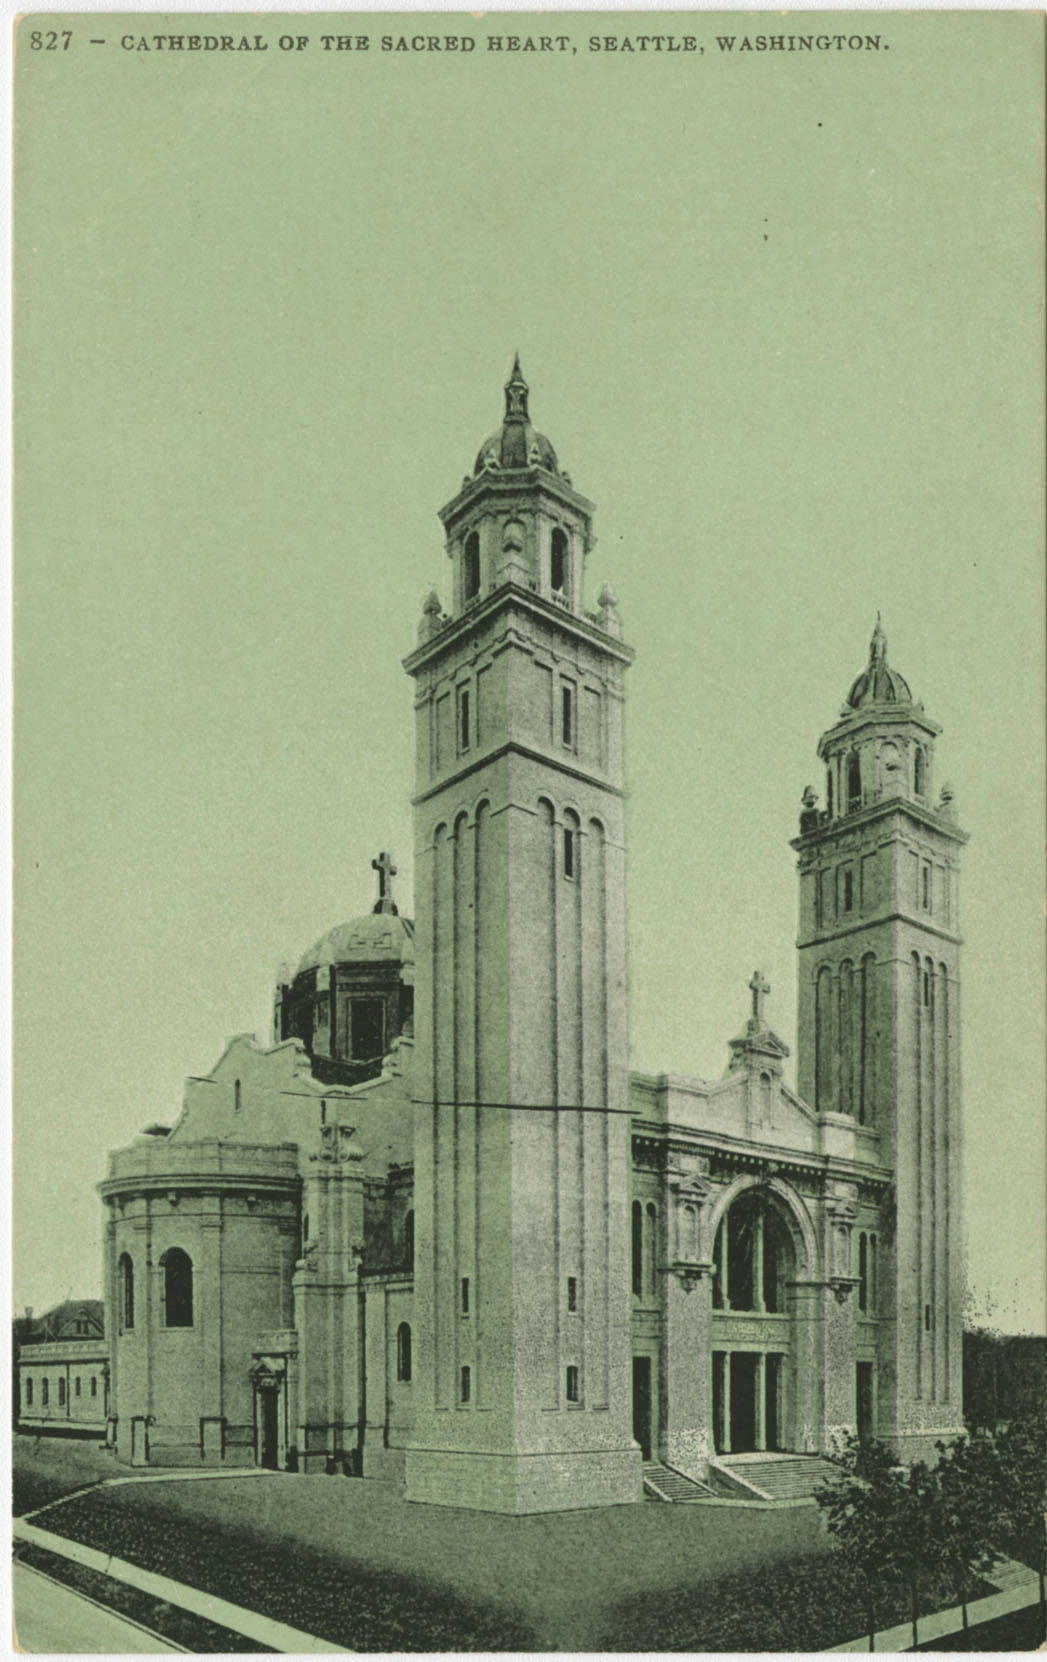 St. James Cathedral, ca. 1909